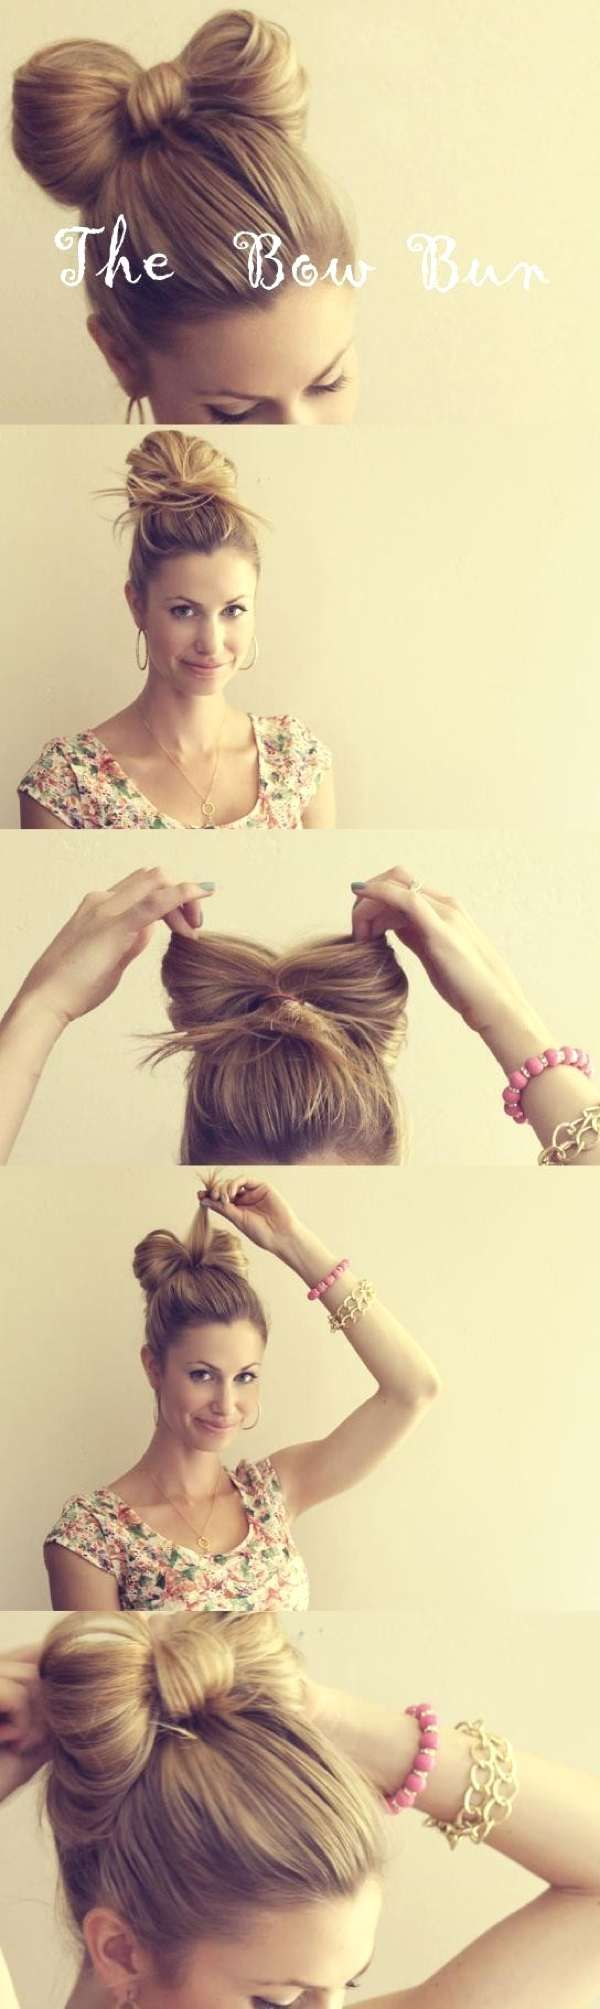 Hair Style Ideas- The Hair Bow - TrendSurvivor - TrendSurvivor // Powered by chloédigital